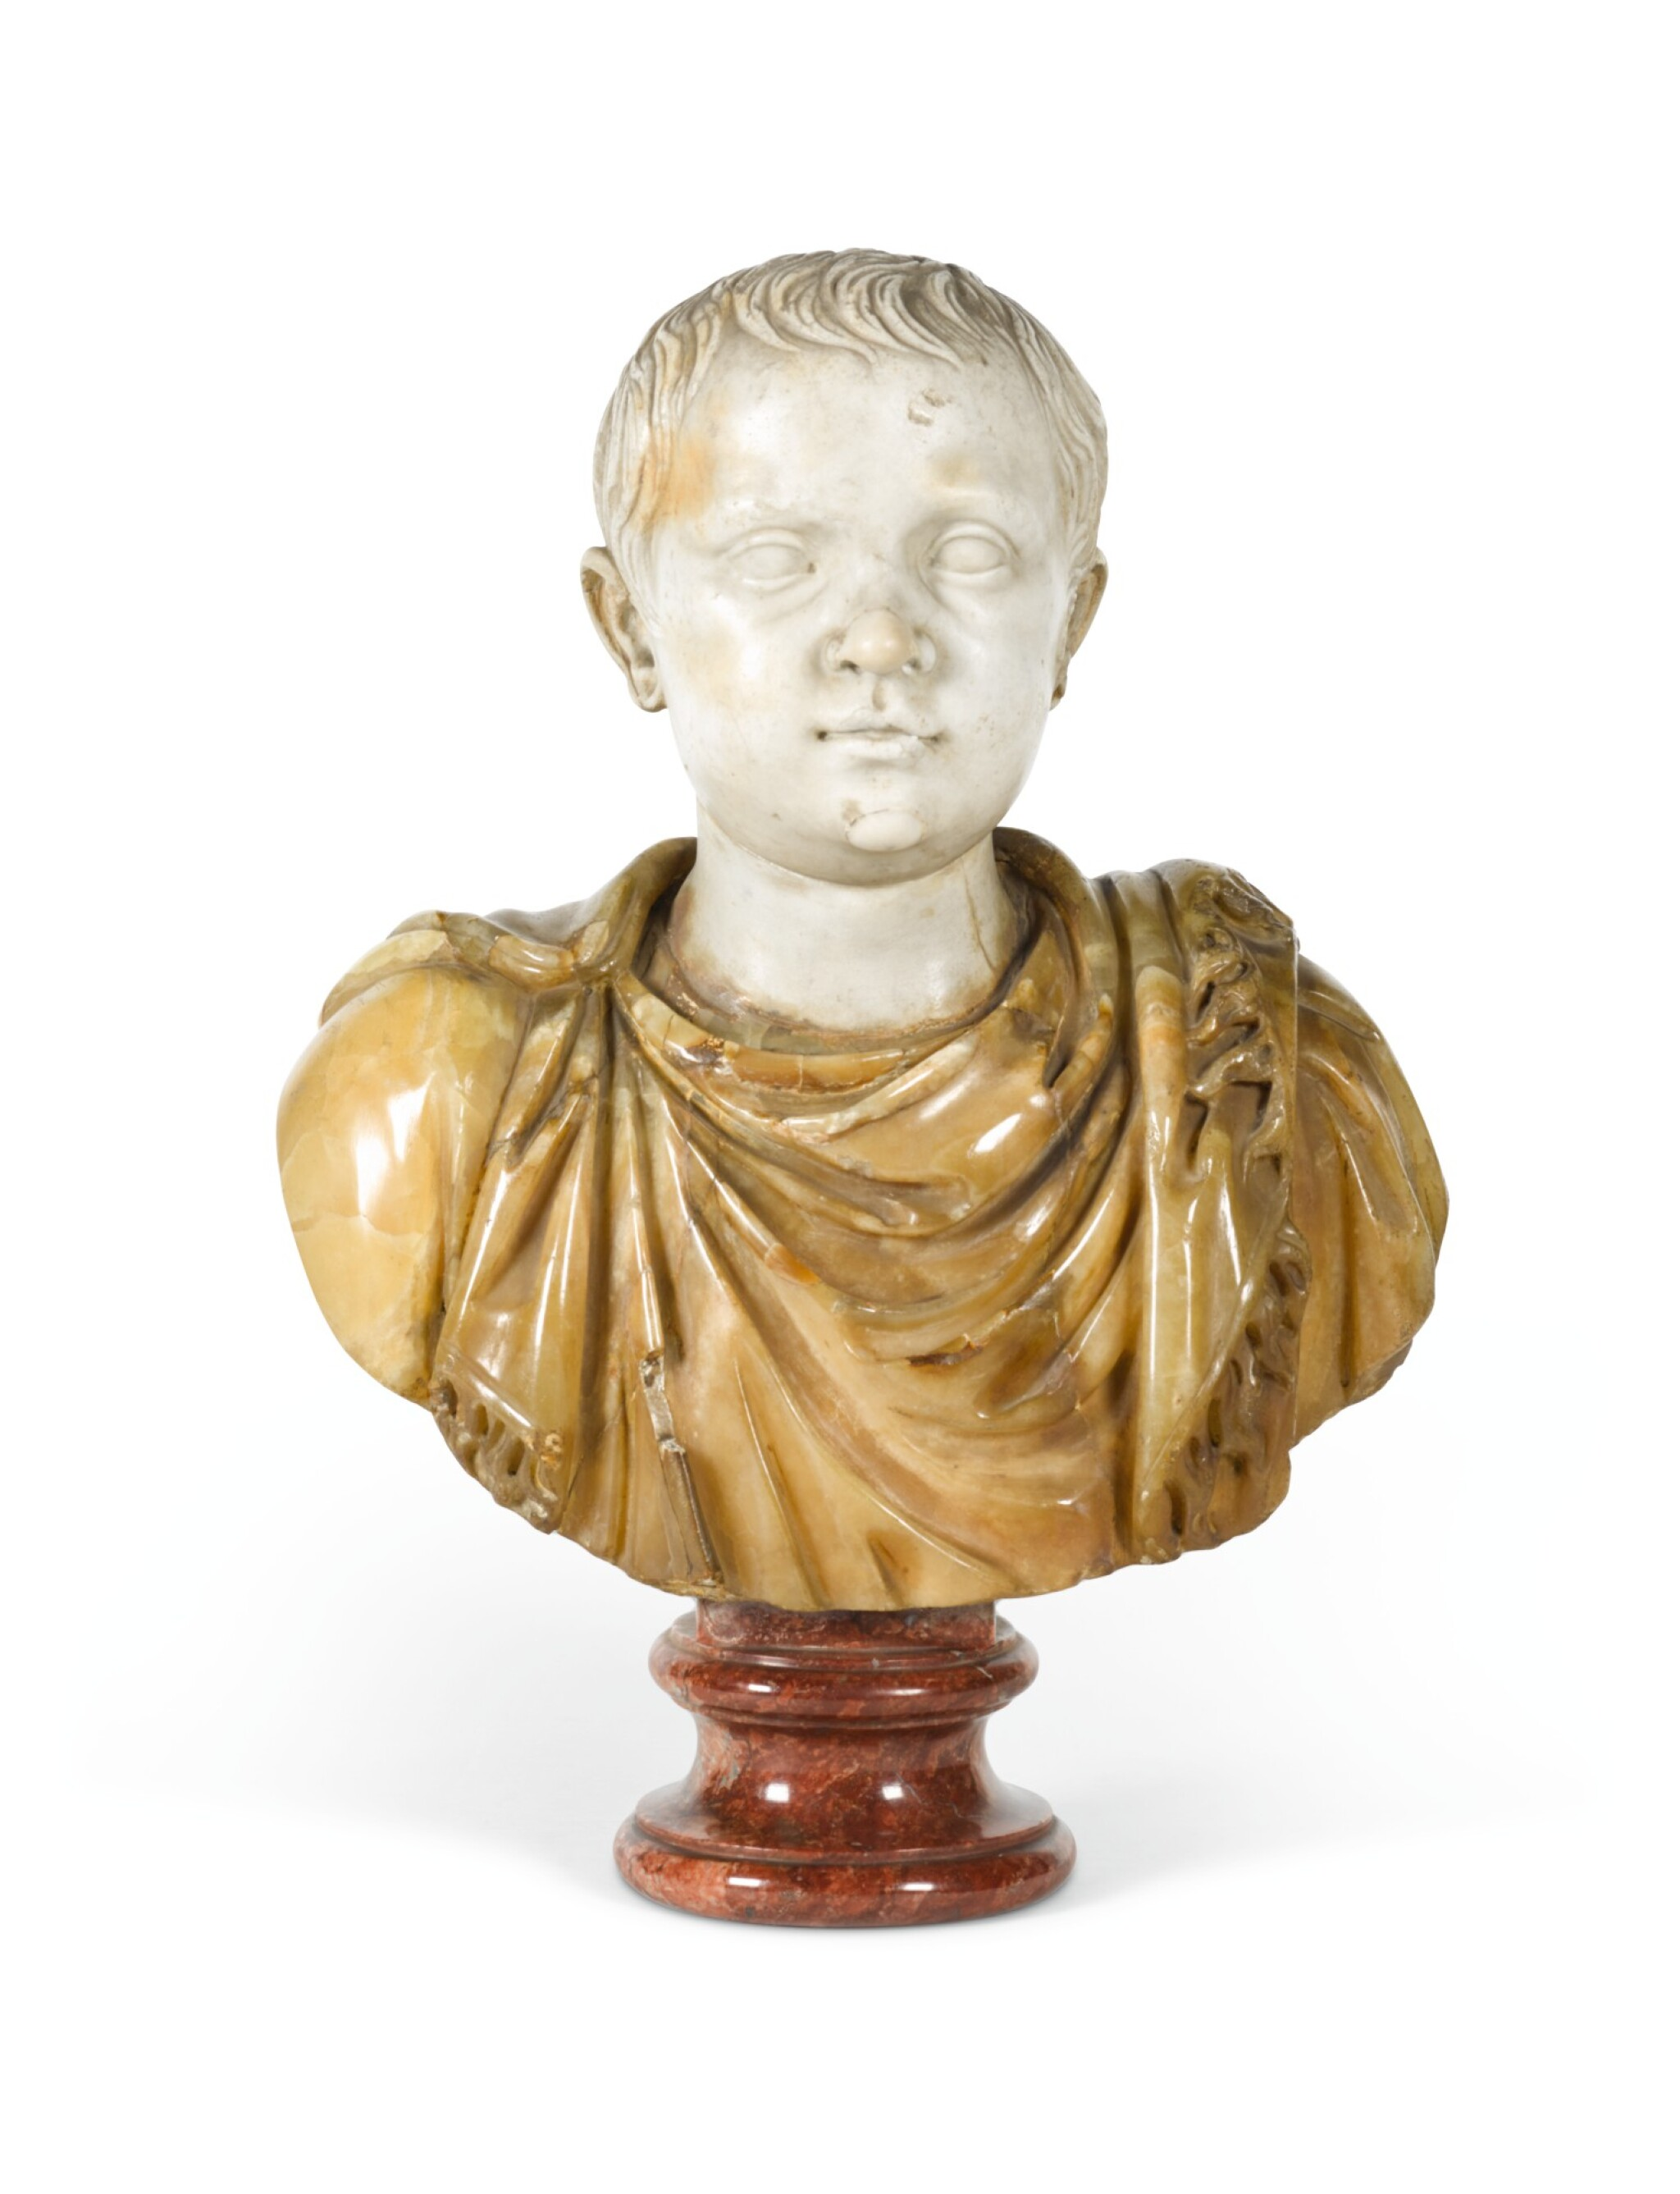 ITALIAN, 18TH CENTURY | Bust of a Young Boy